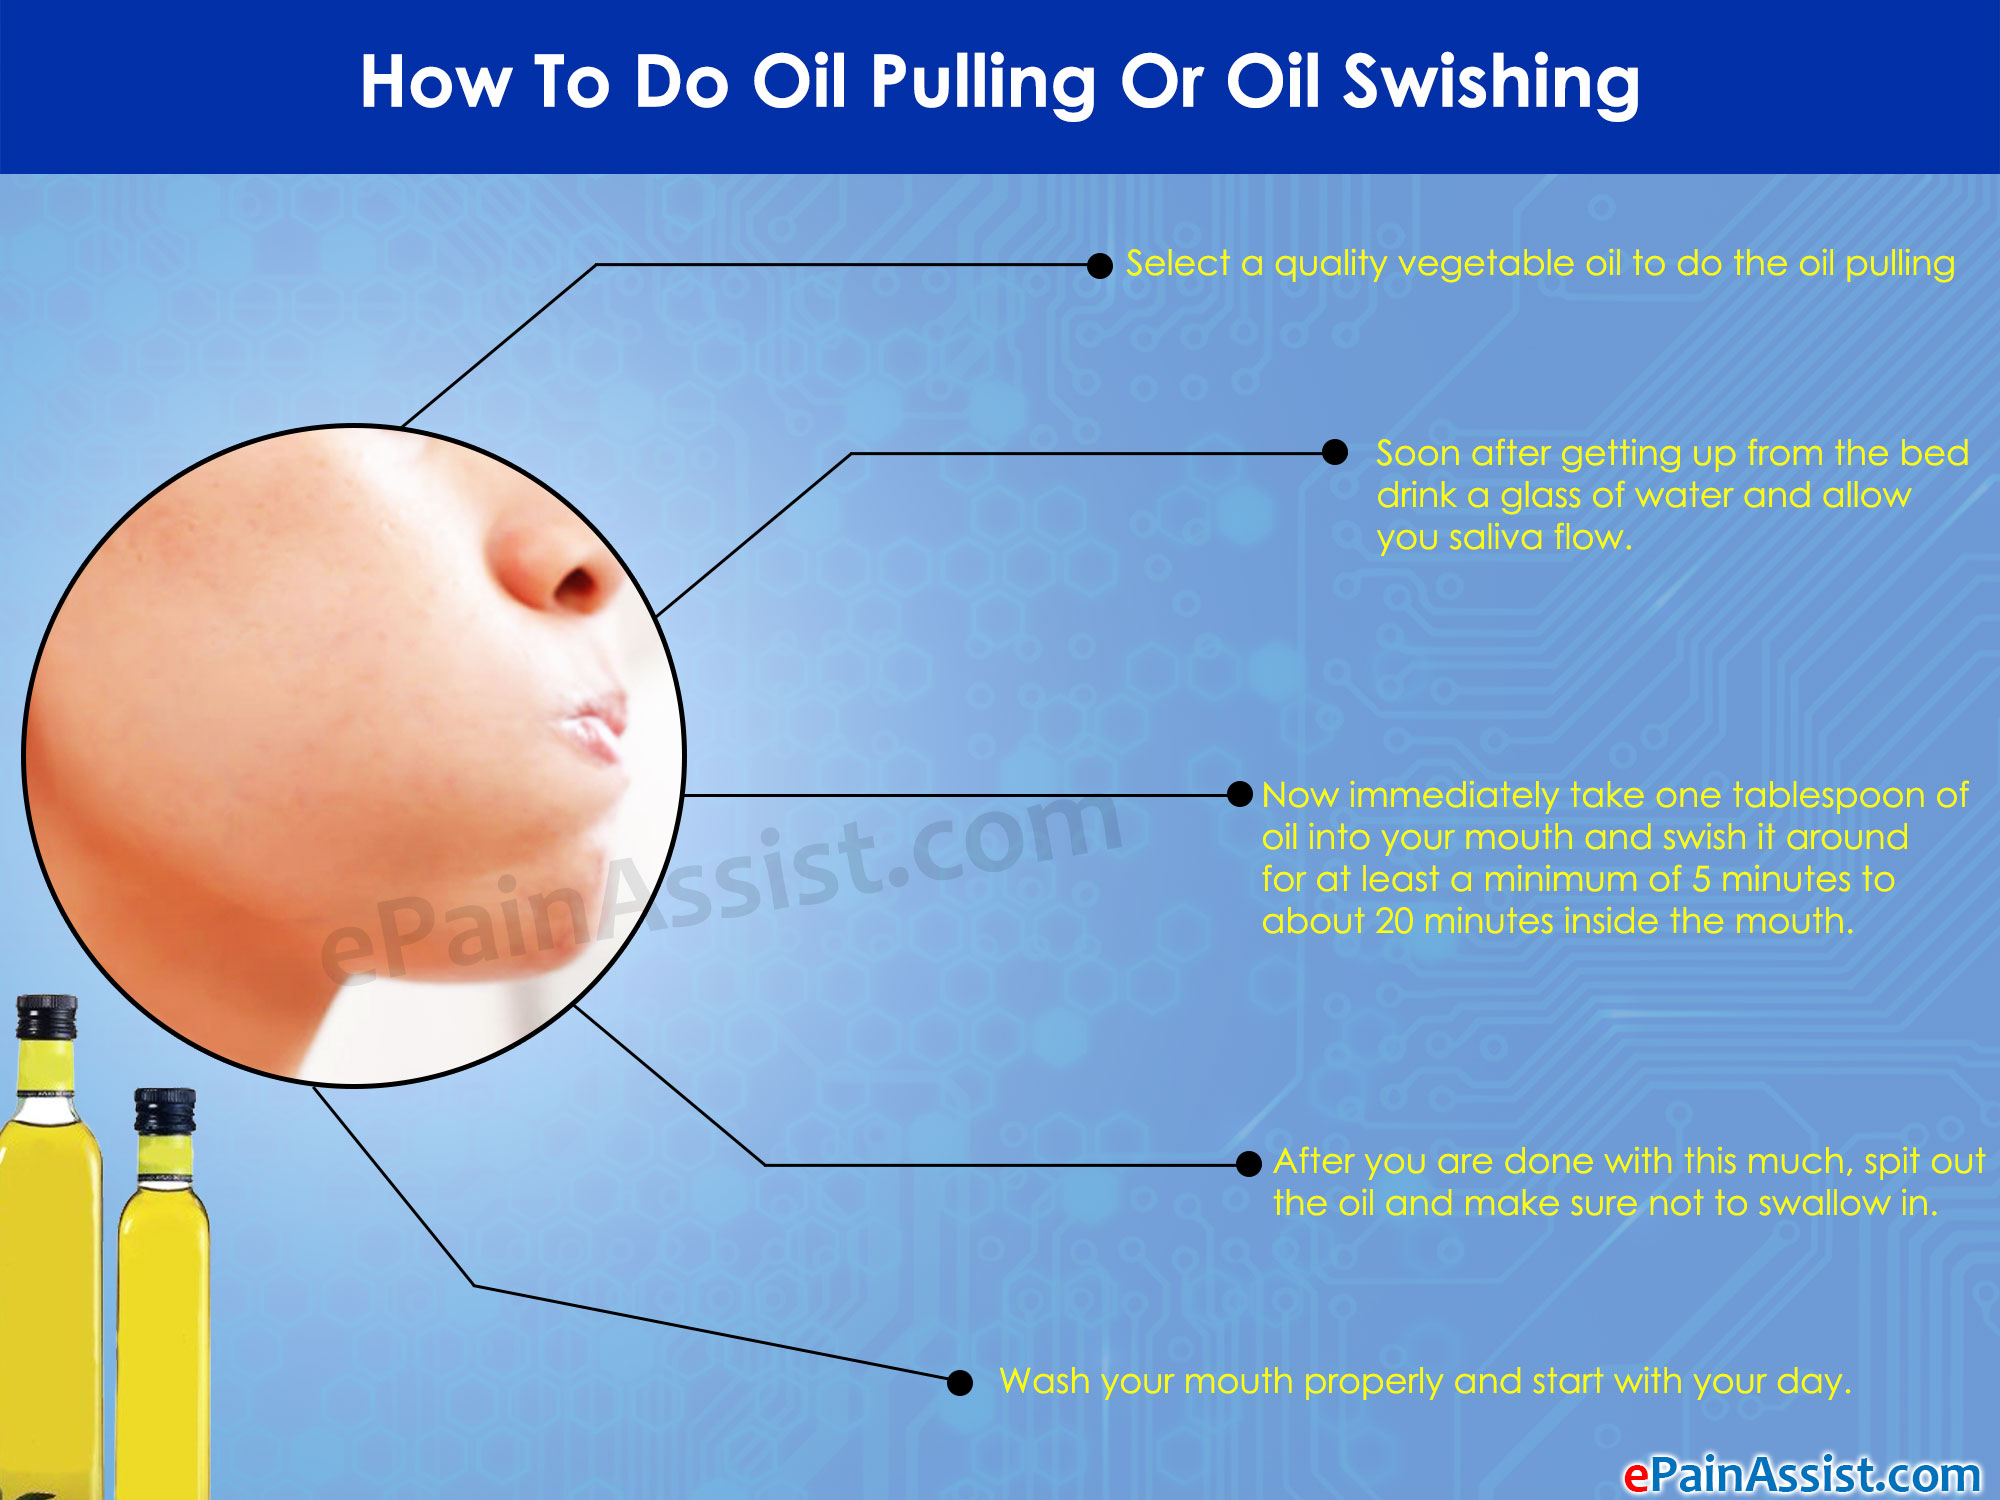 Oil Pulling Or Oil Swishingbenefitshow To Dotype Of Oil To Use